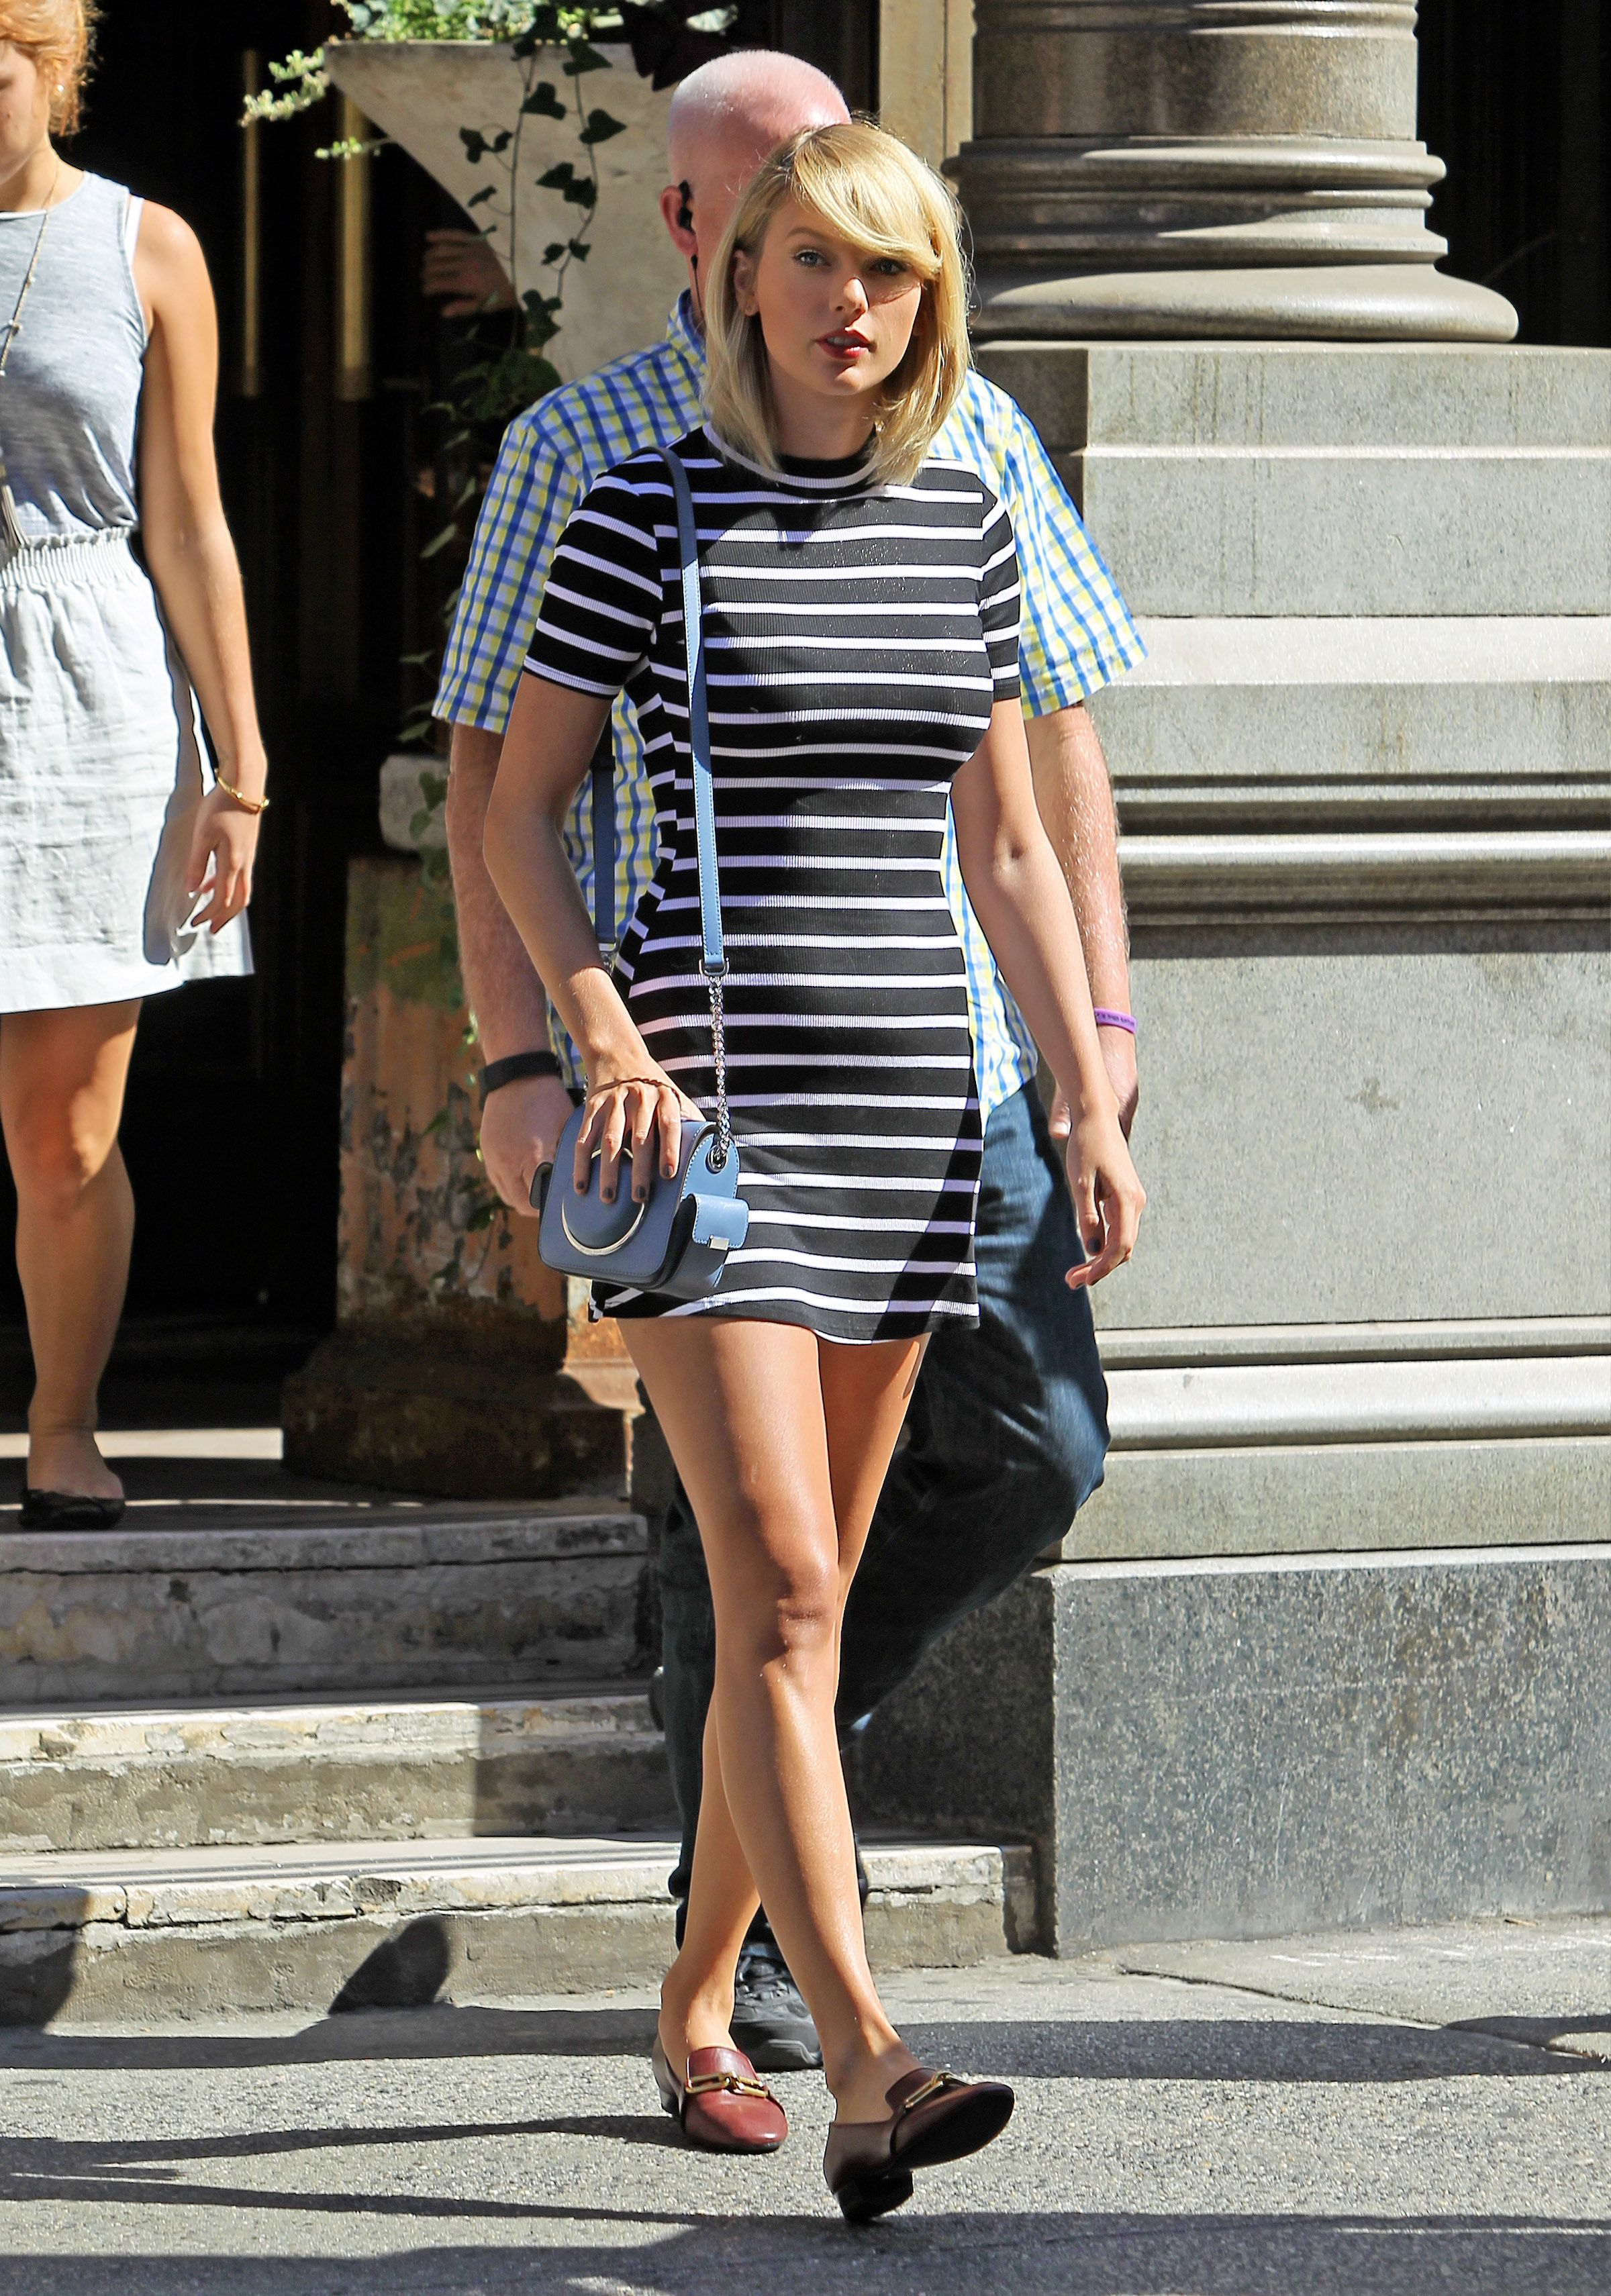 2019 year for women- Swift taylor piles preppy new york